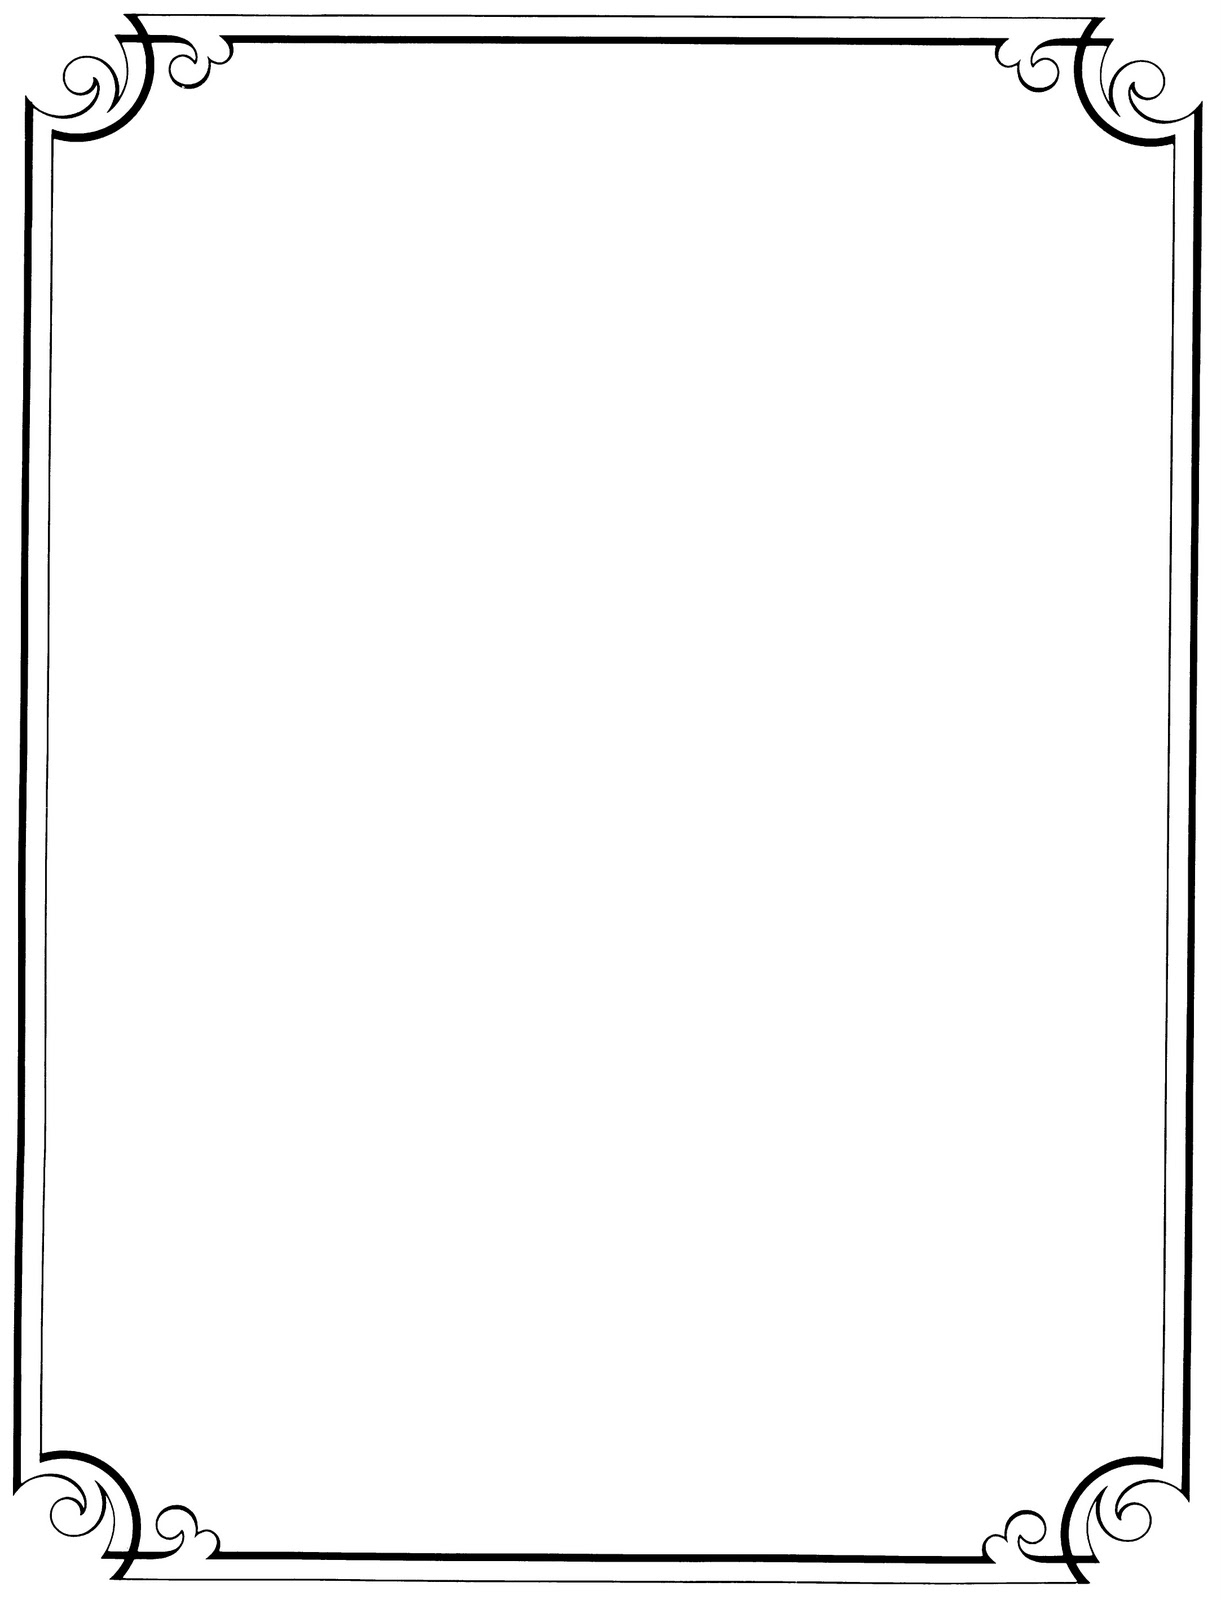 Clipart frames borders free jpg black and white 15+ Clipart Borders And Frames | ClipartLook jpg black and white